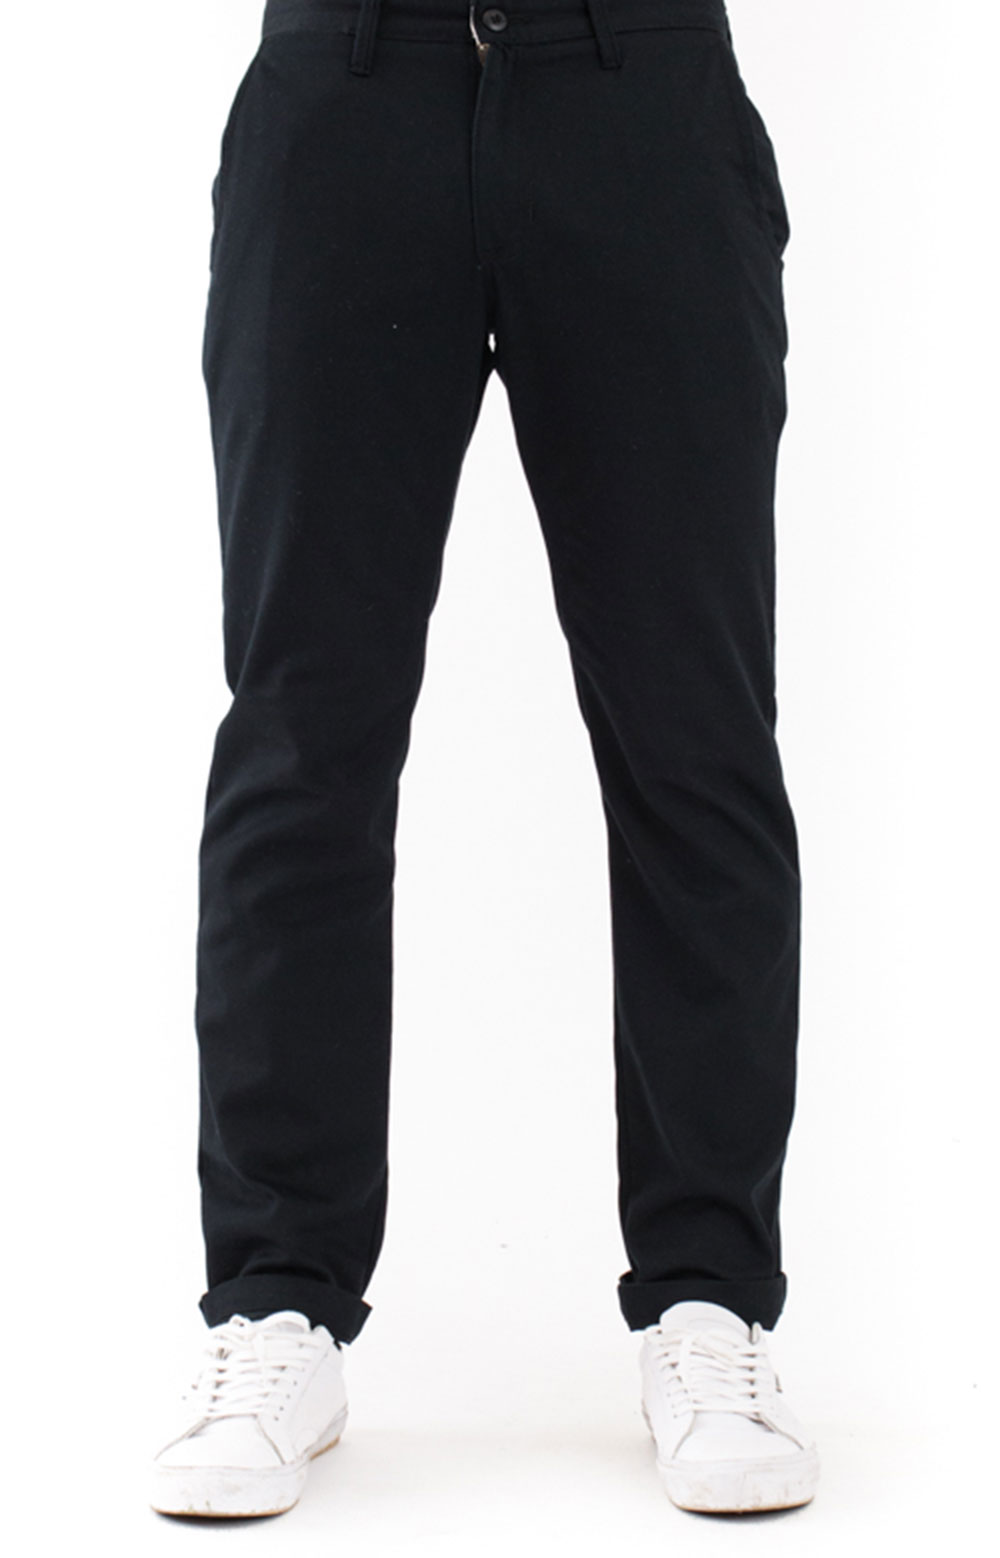 0190c759b9fce1 ... Thumbnail 1. Authentic Chino Stretch Pants ...